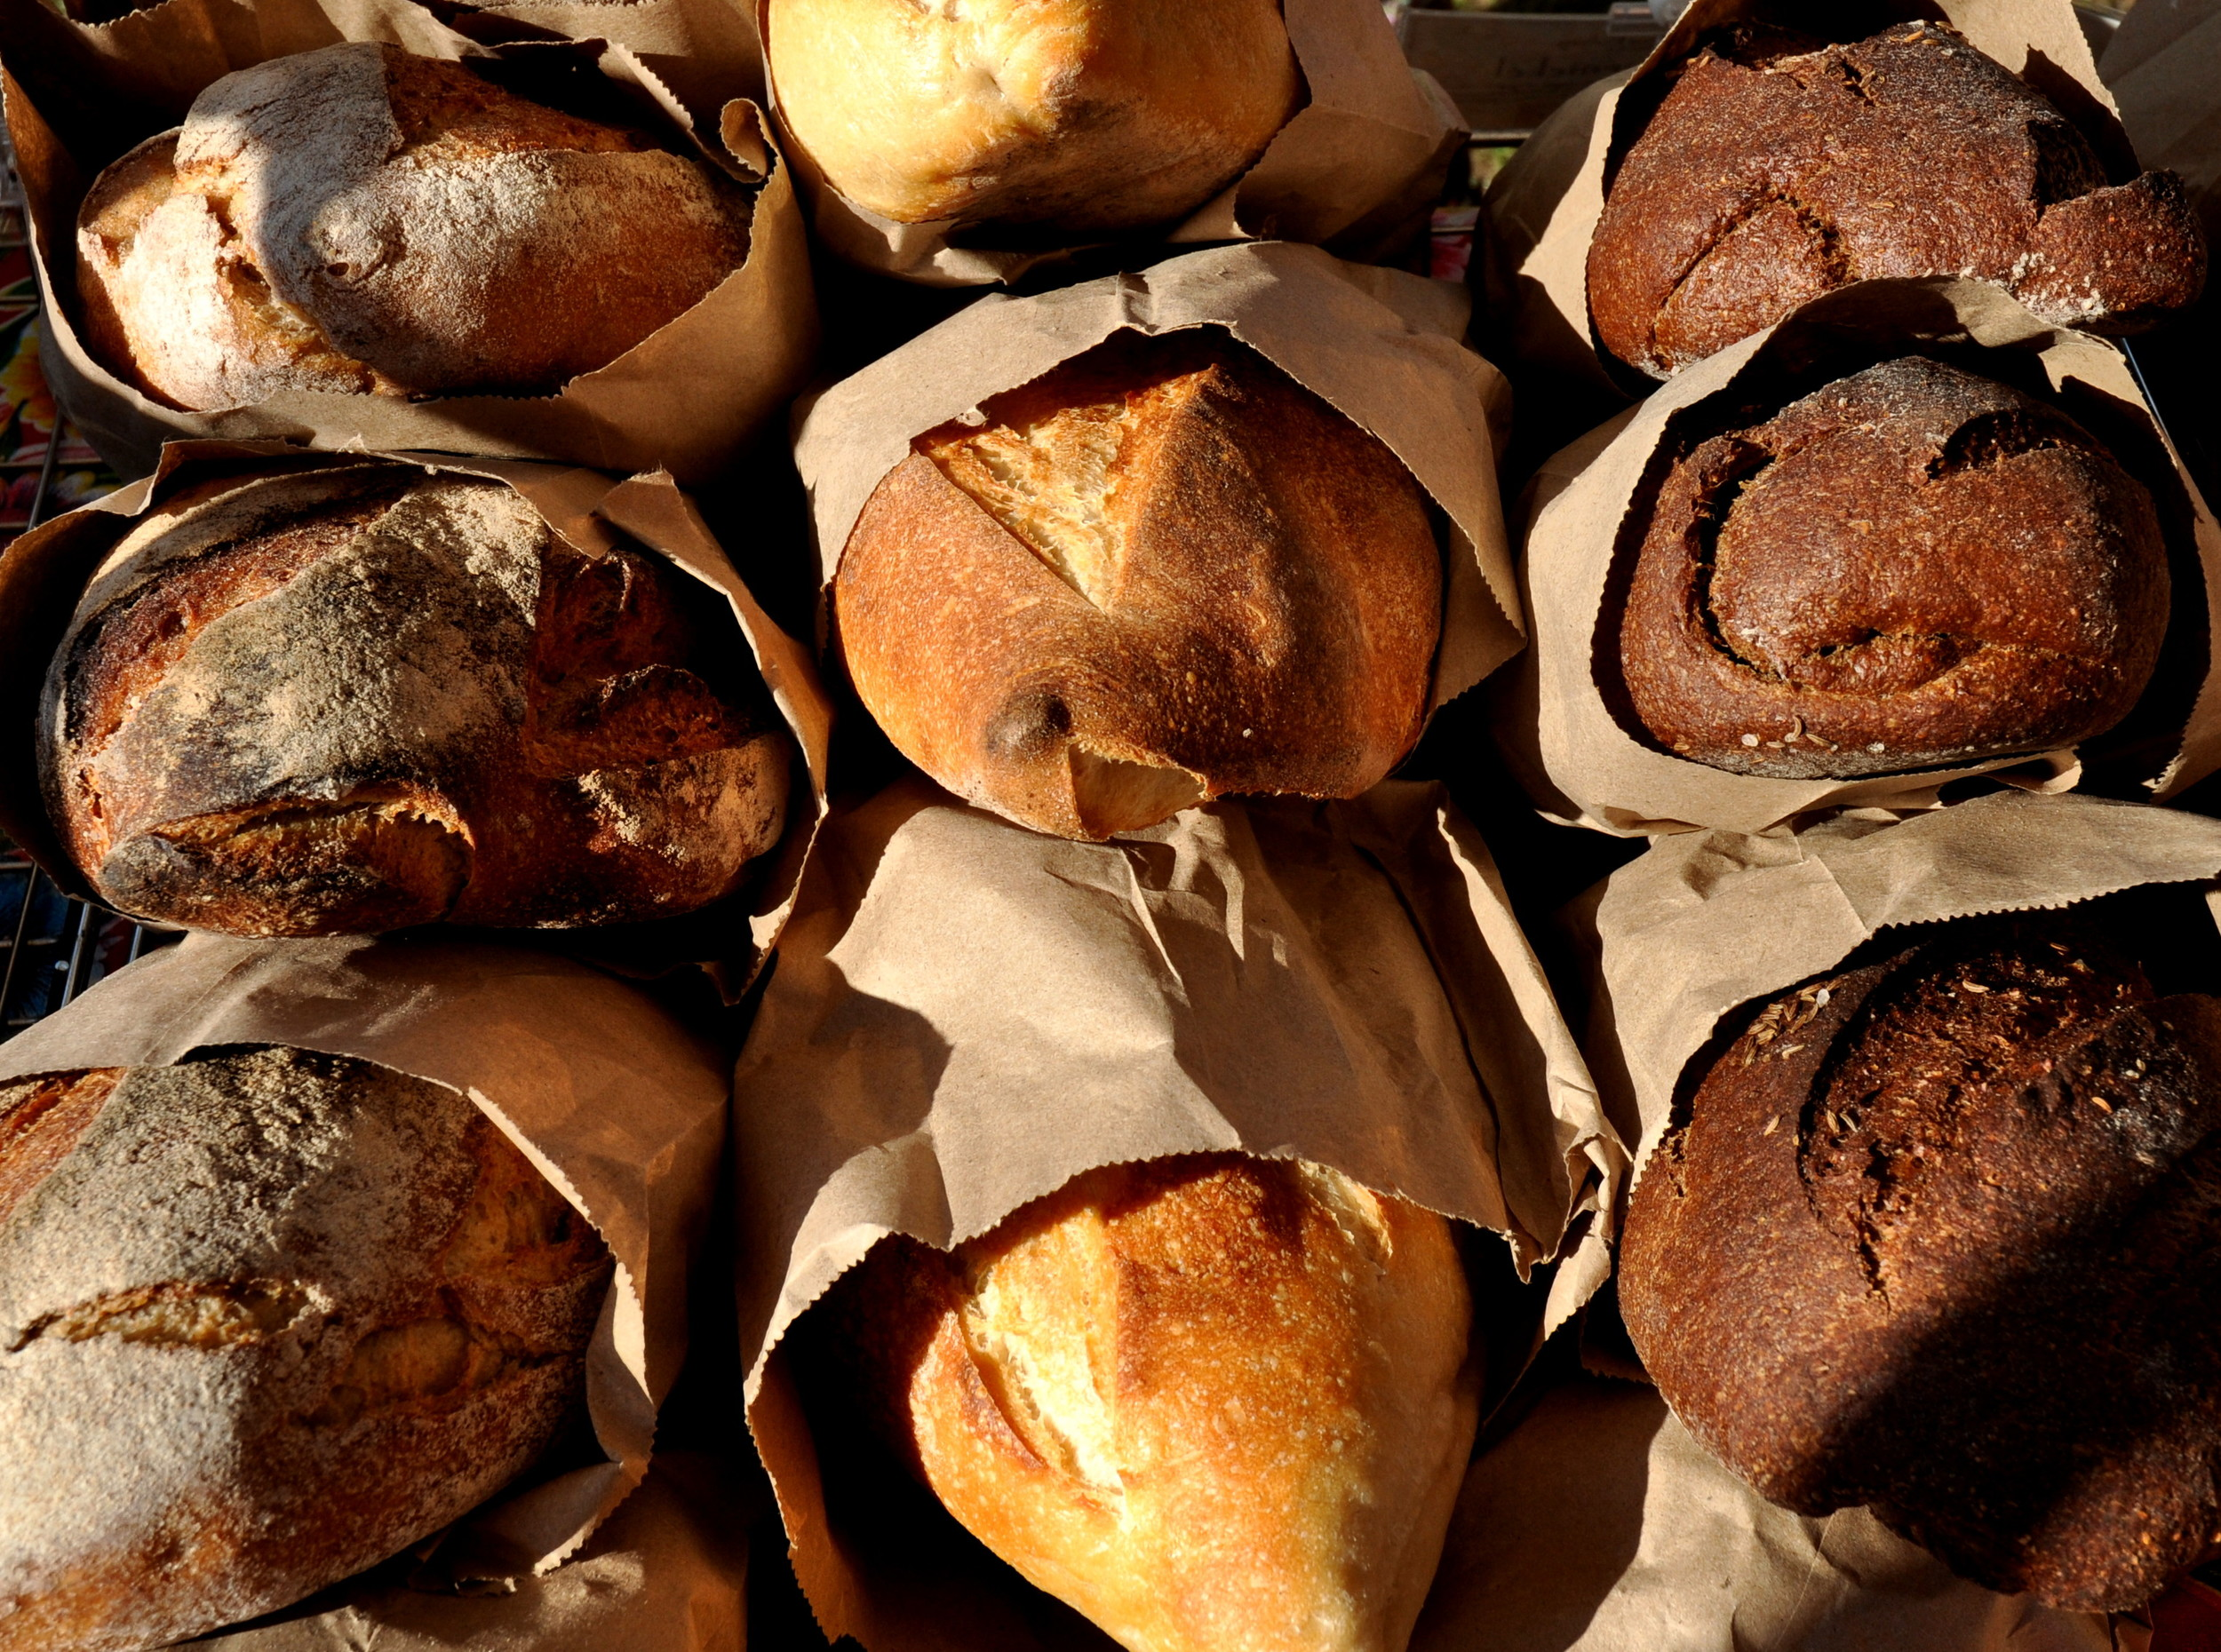 Artisan breads from Tall Grass Bakery. Photo copyright 2012 by Zachary D. Lyons.